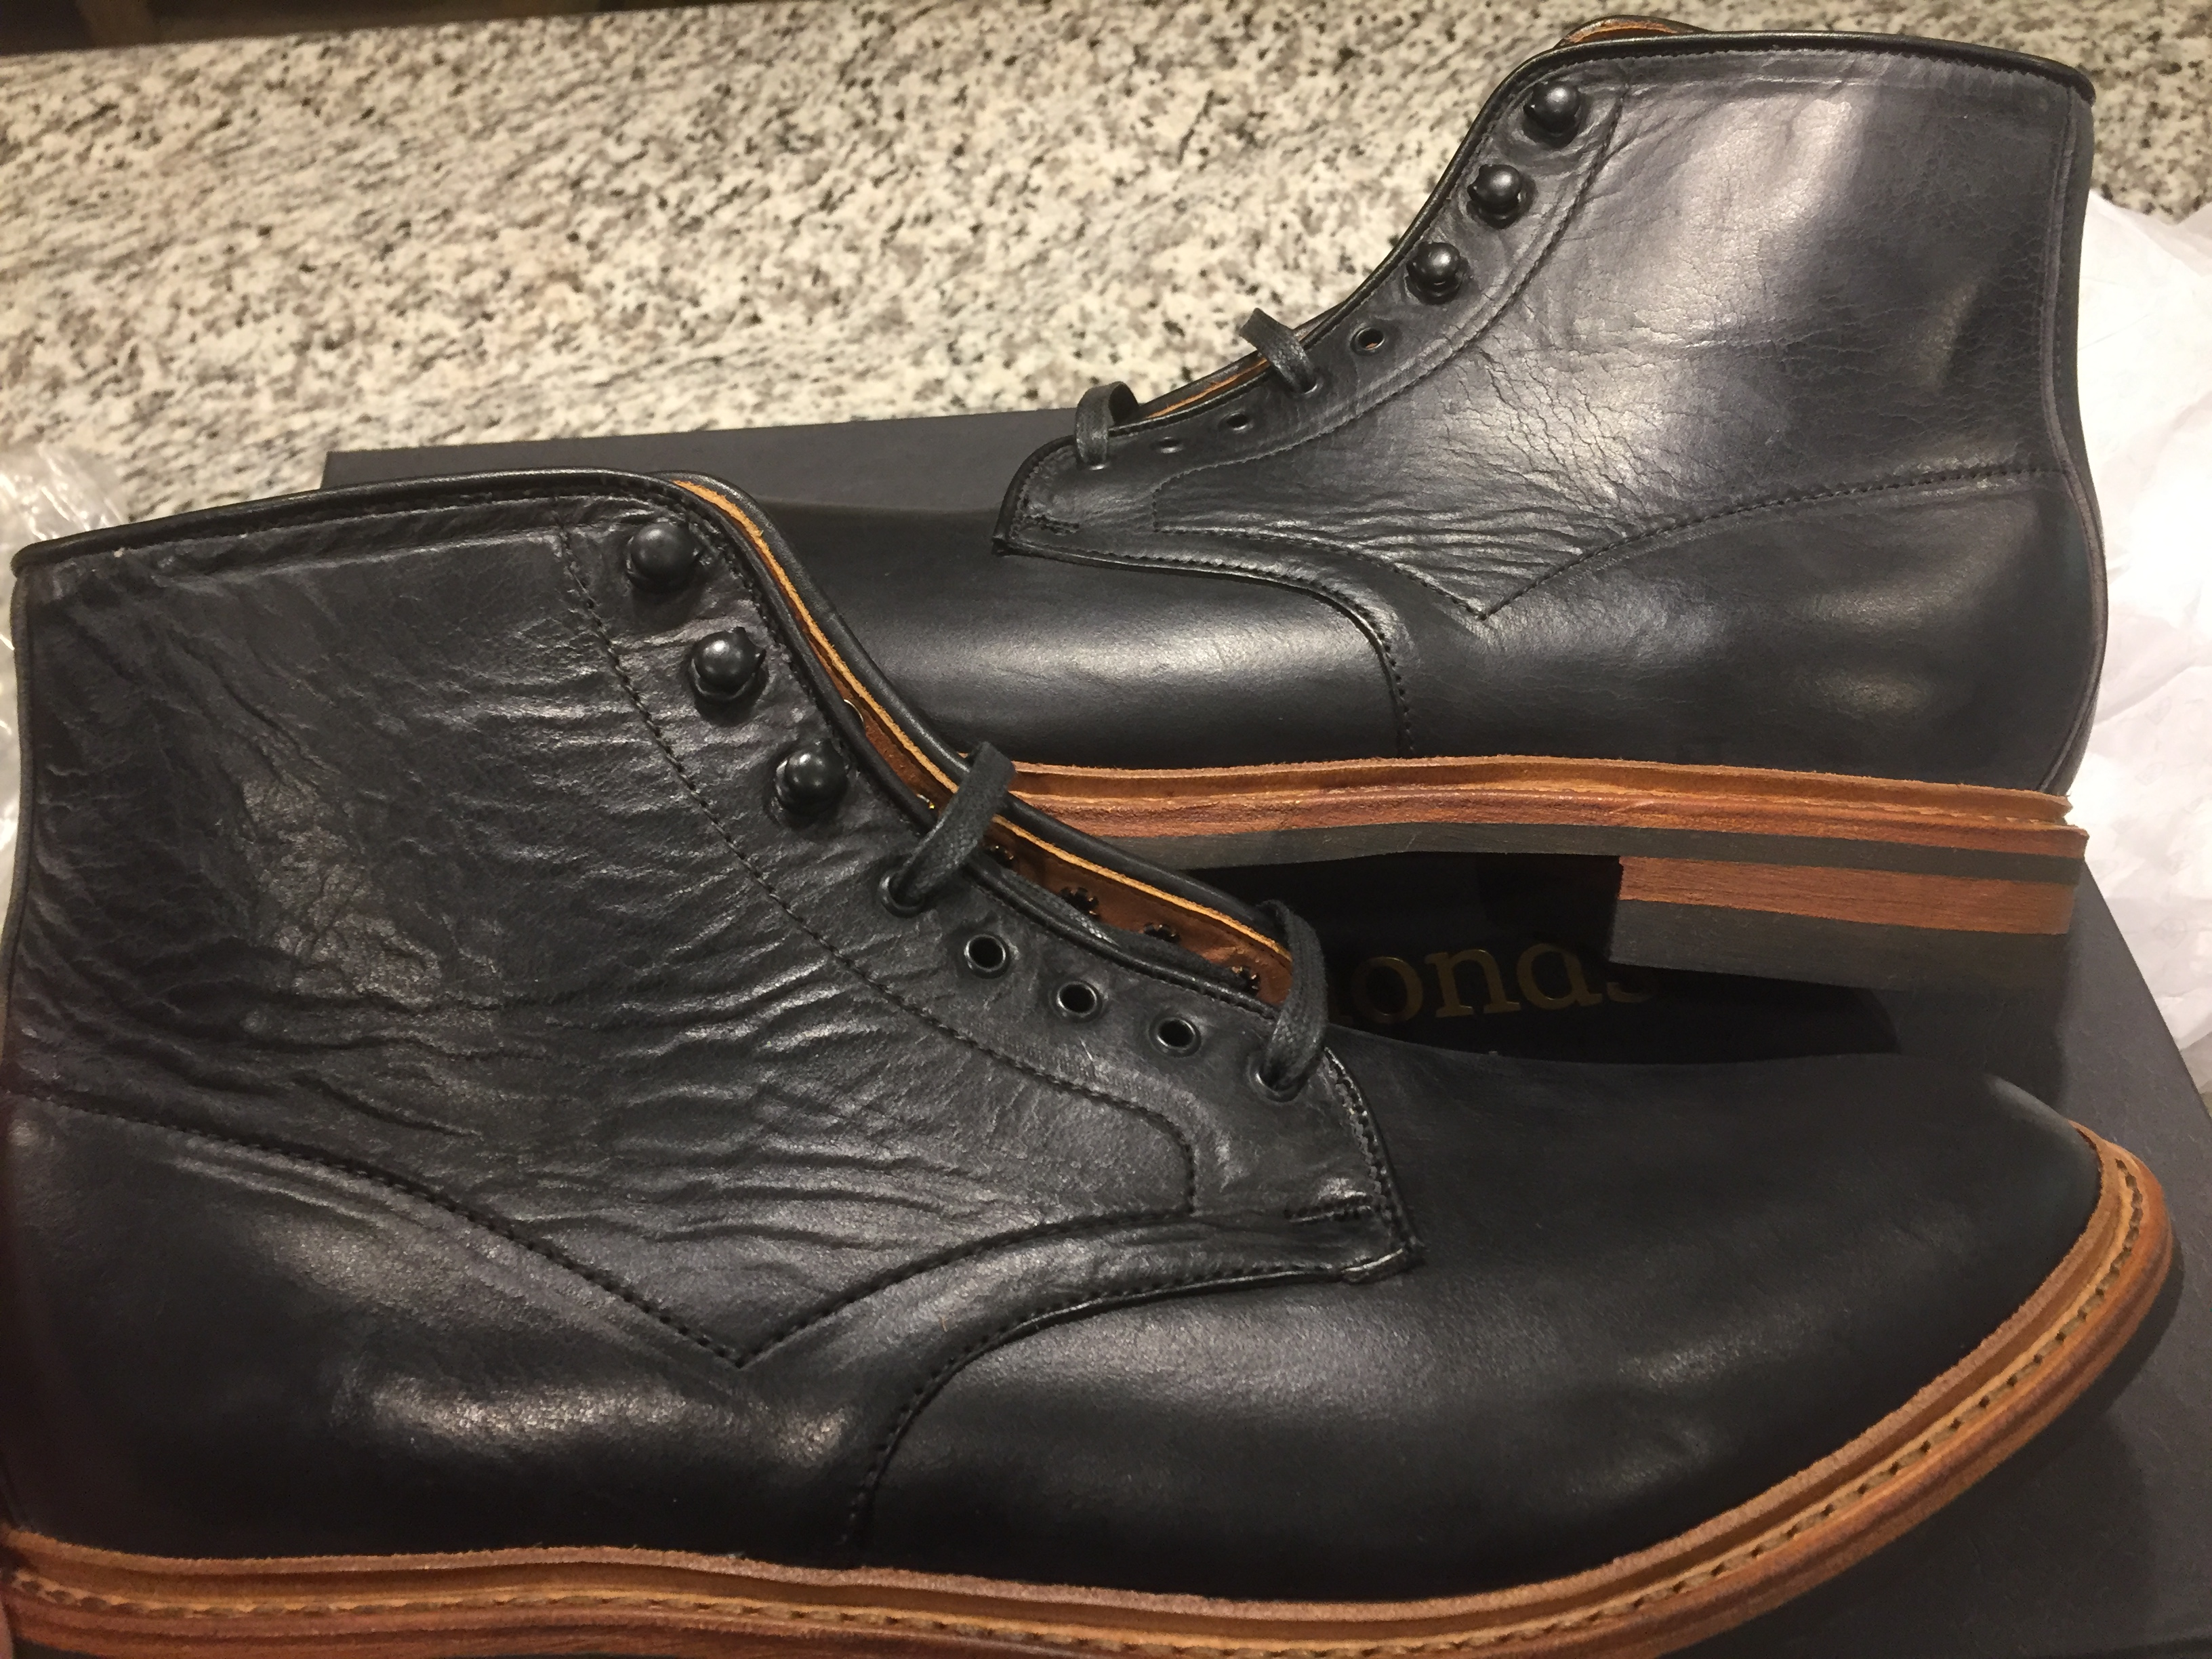 Fabian43's photos in ALLEN EDMONDS APPRECIATION THREAD 2017 - NEWS, PICTURES, SIZING, ACCESSORIES, CLOTHING, ETC